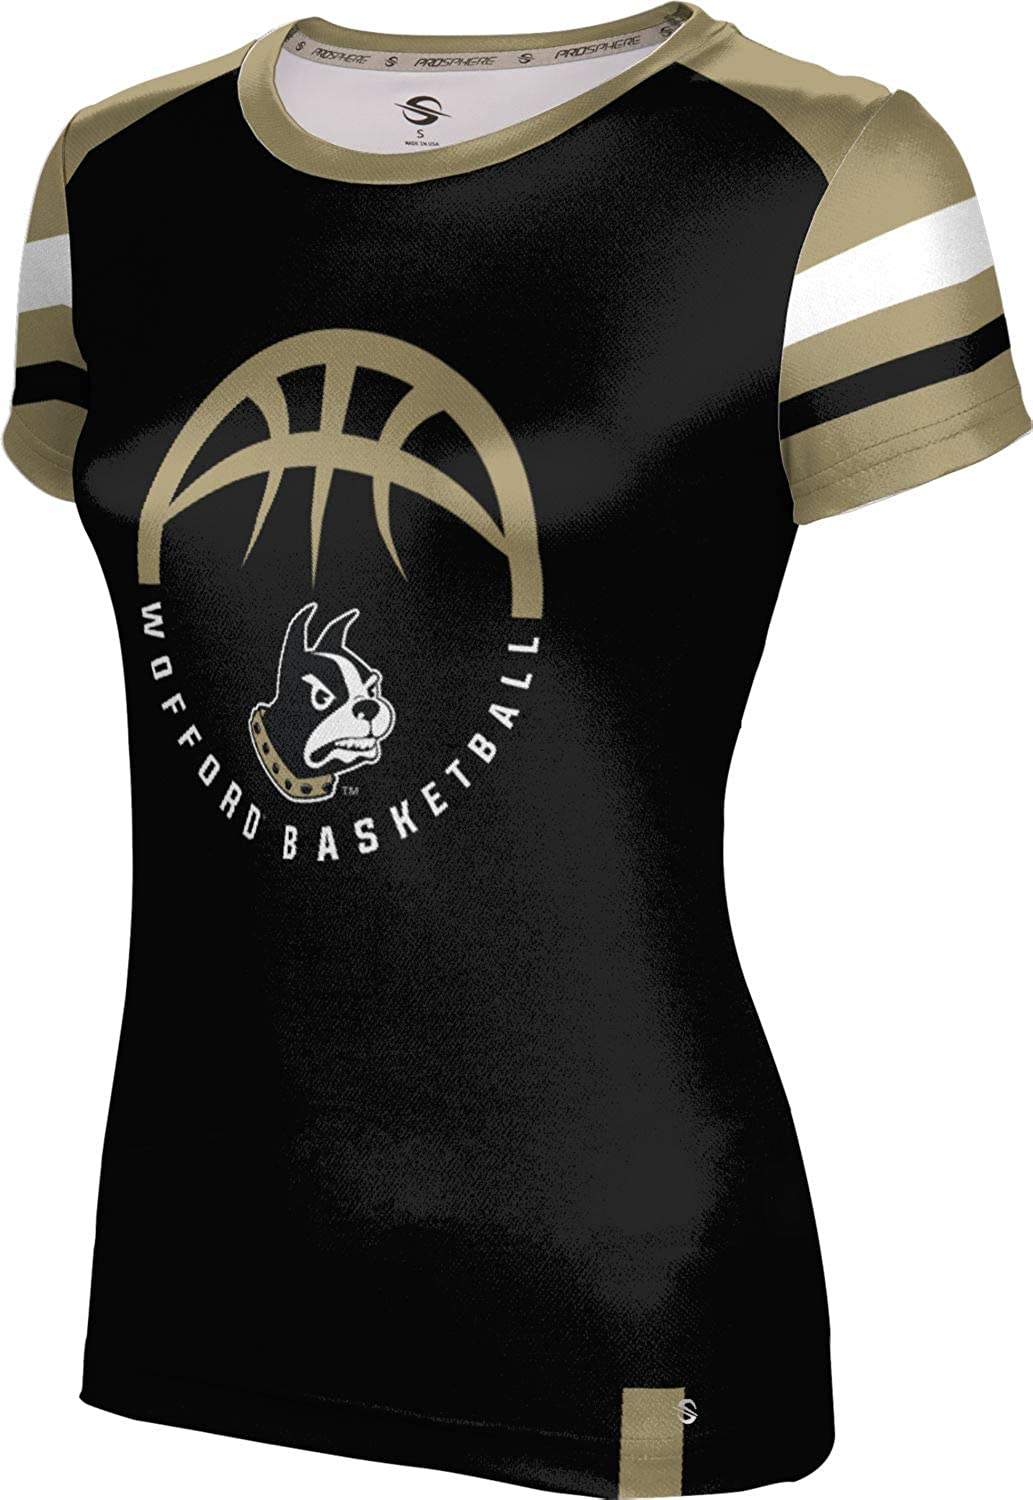 ProSphere Wofford College Basketball Girls' Performance T-Shirt (Old School)